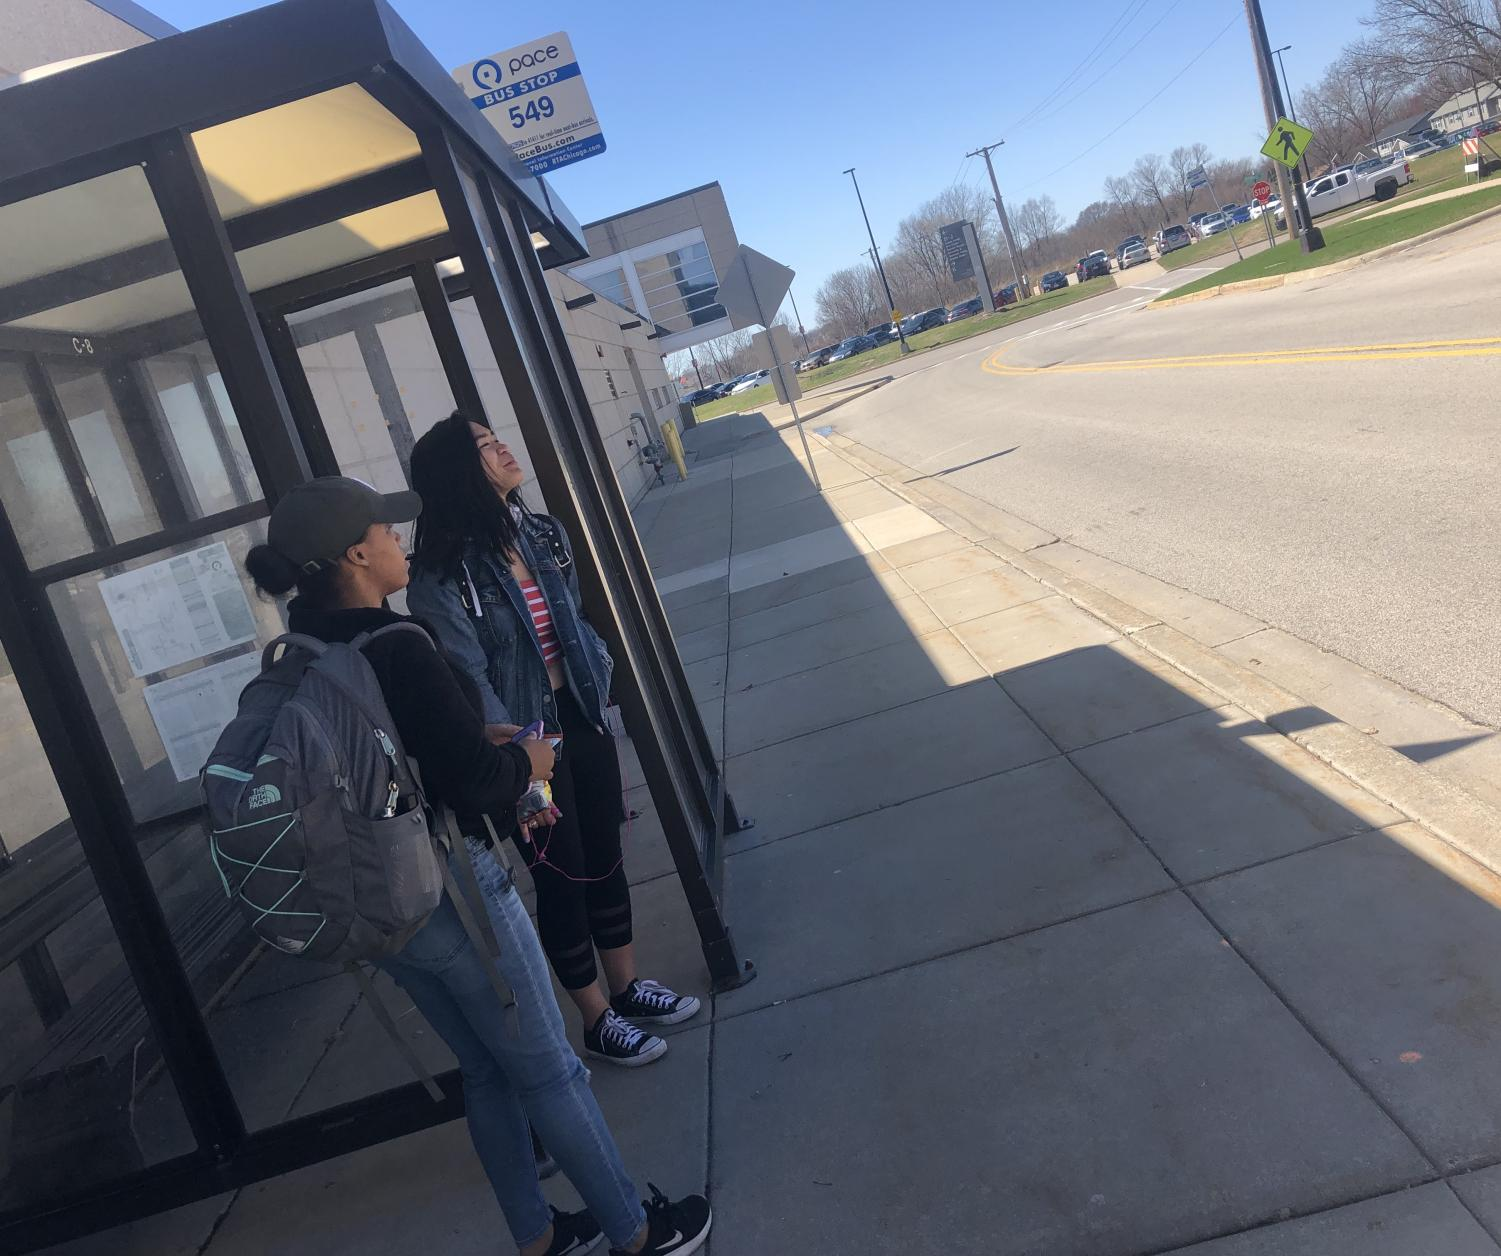 Naja May-Pearson waiting after school for the 2:23 p.m. Pace bus.